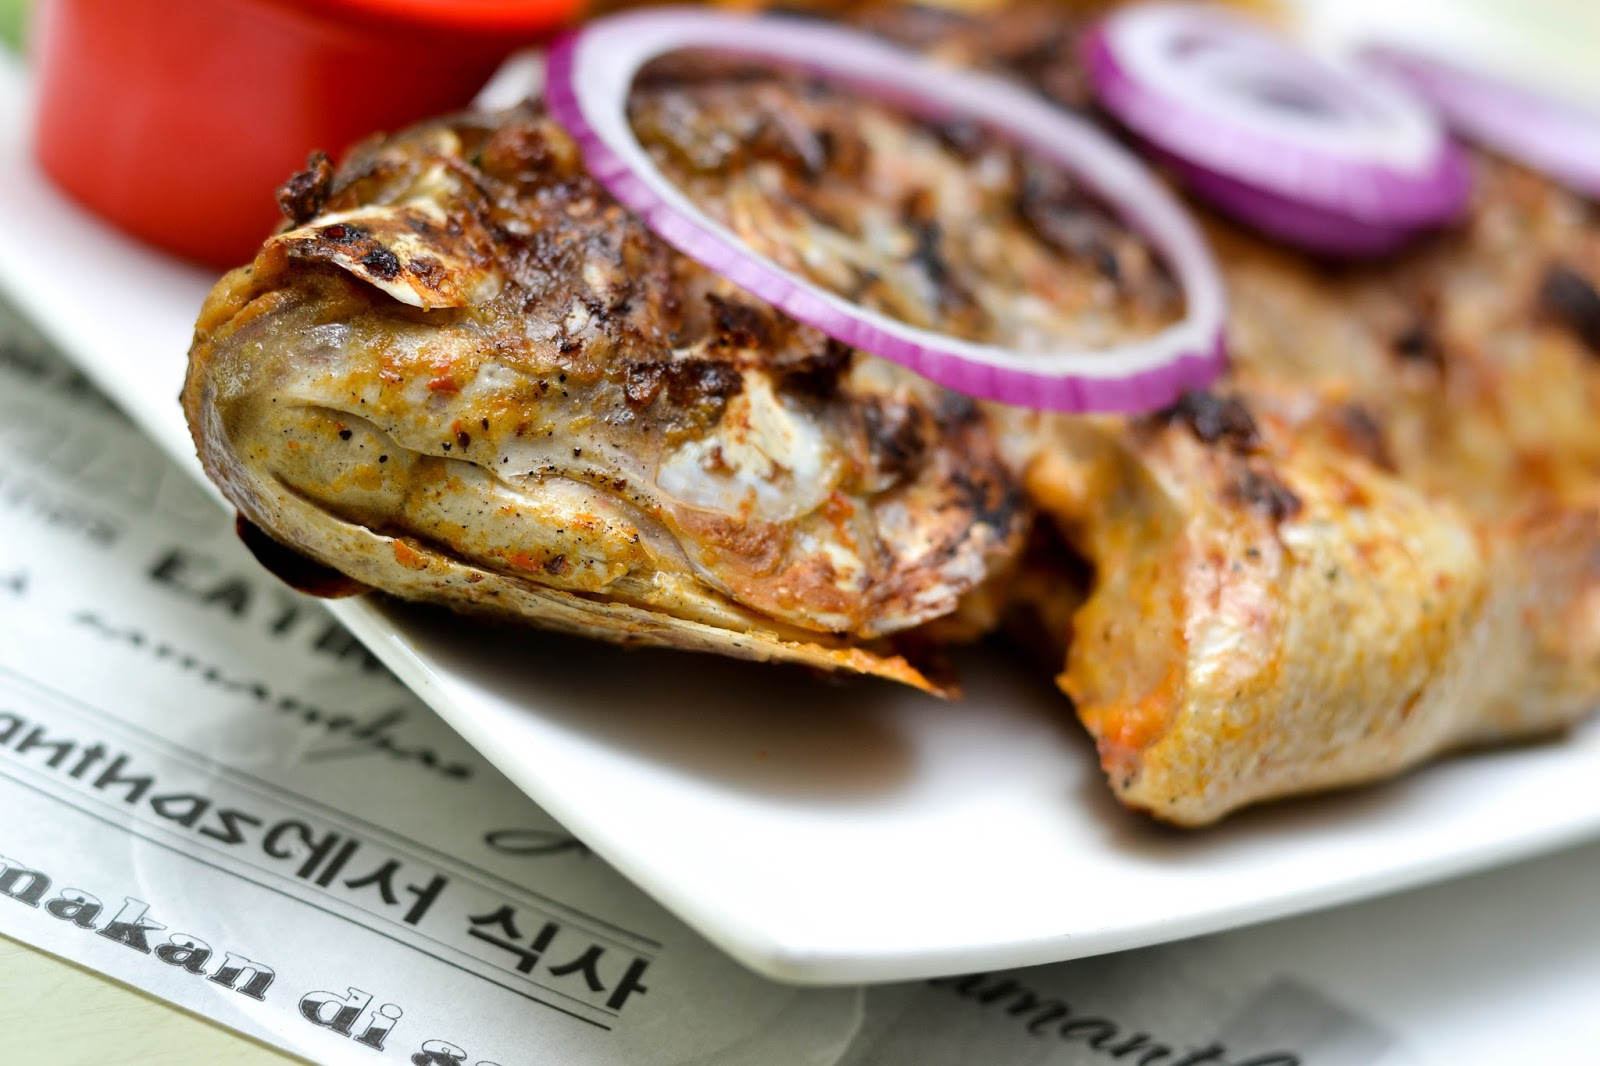 Under view of Grilled Pepper Tilapia Fish